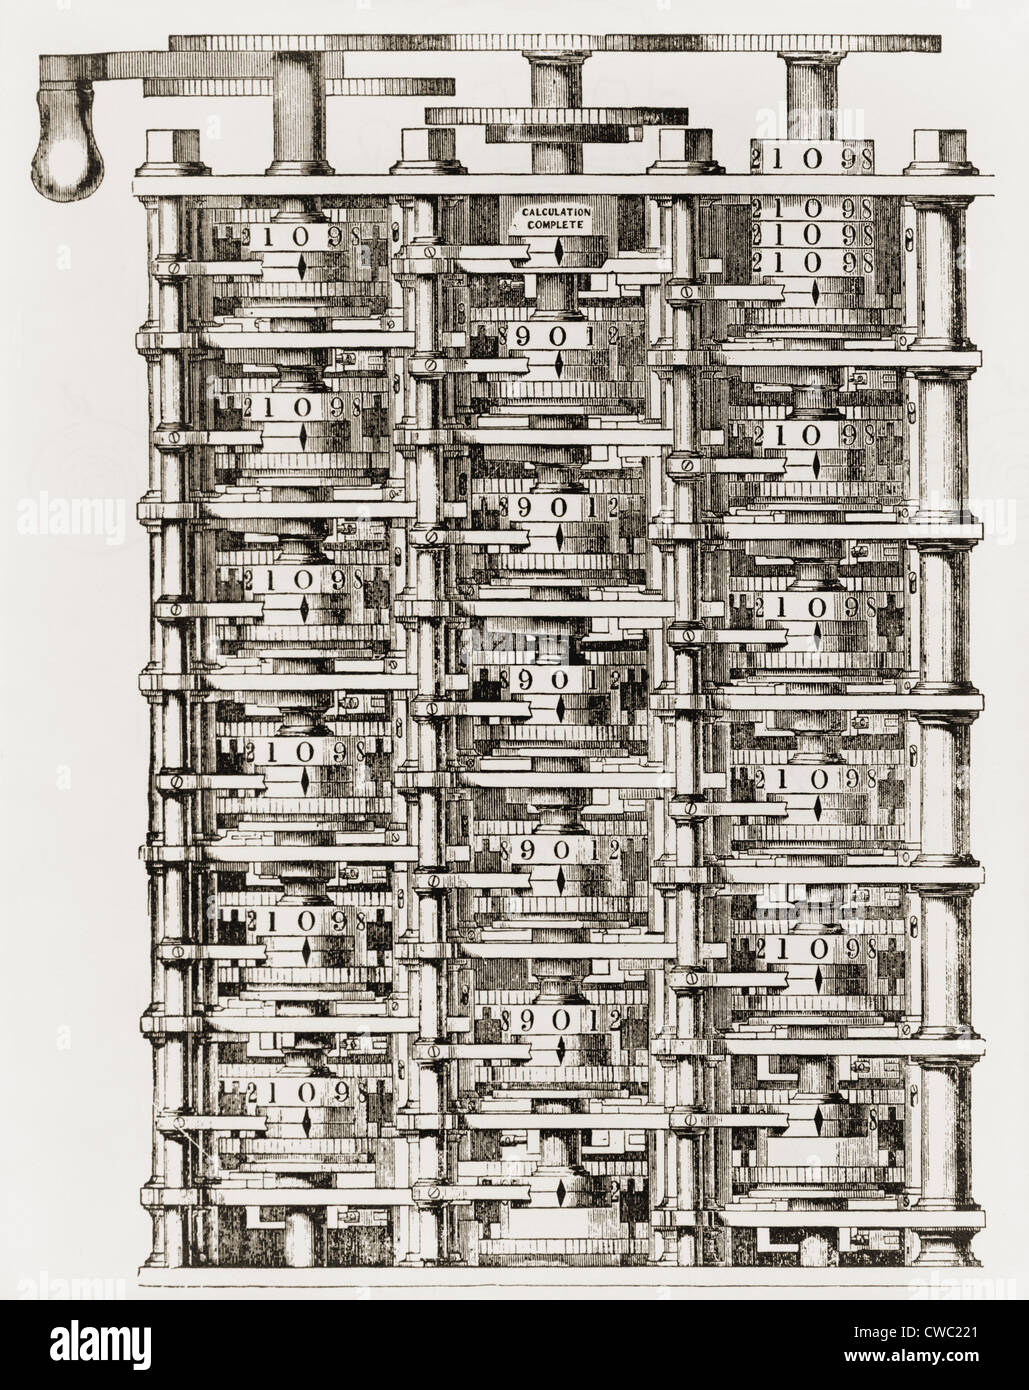 Small part of Babbage's mechanical calculating engine his Difference Engine an invention to which he dedicated - Stock Image